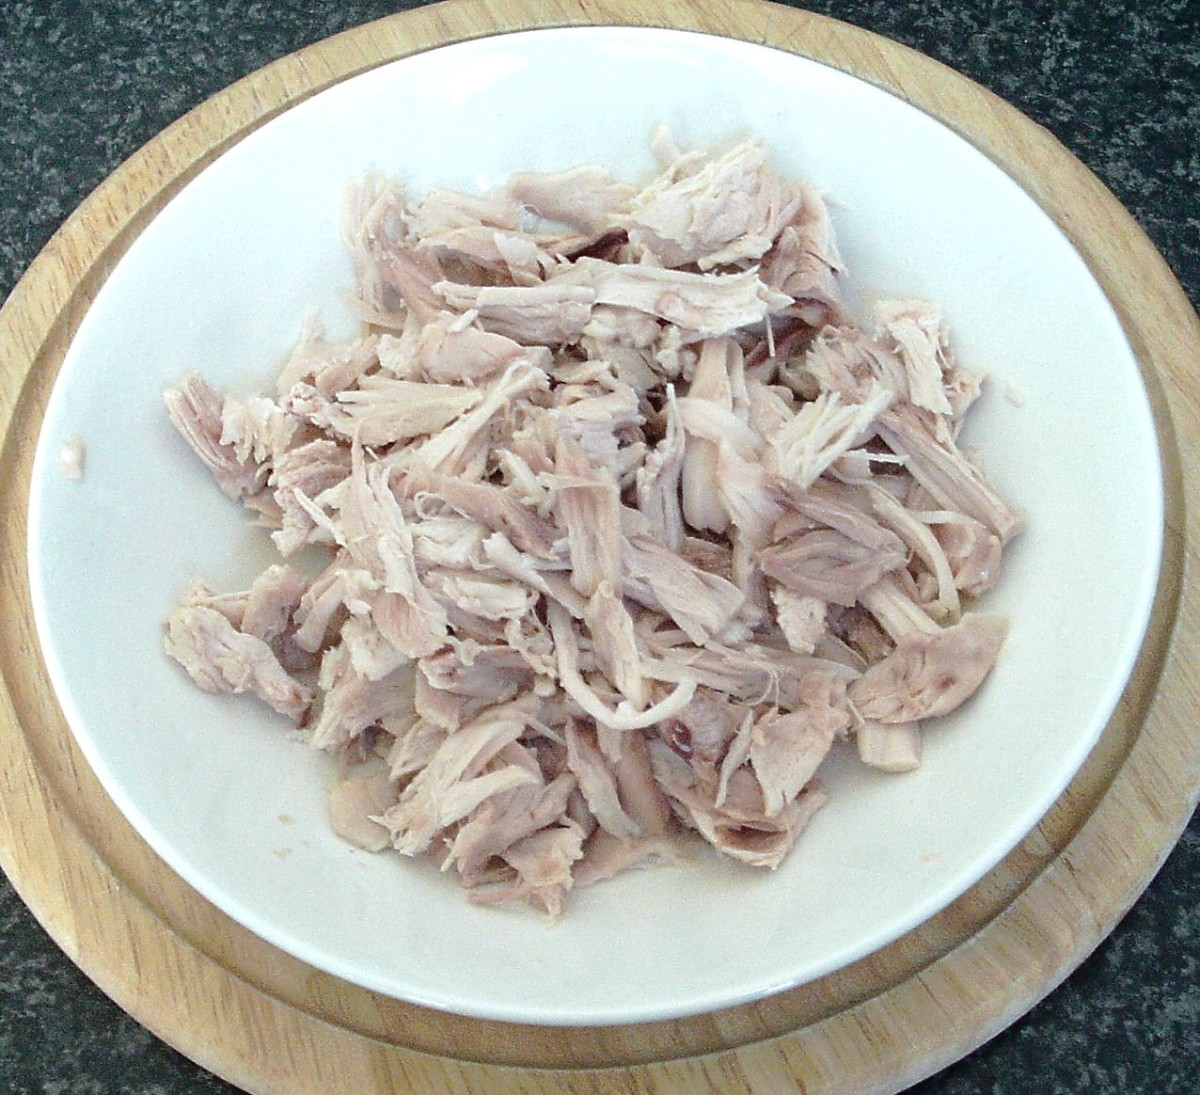 Chicken thigh meat